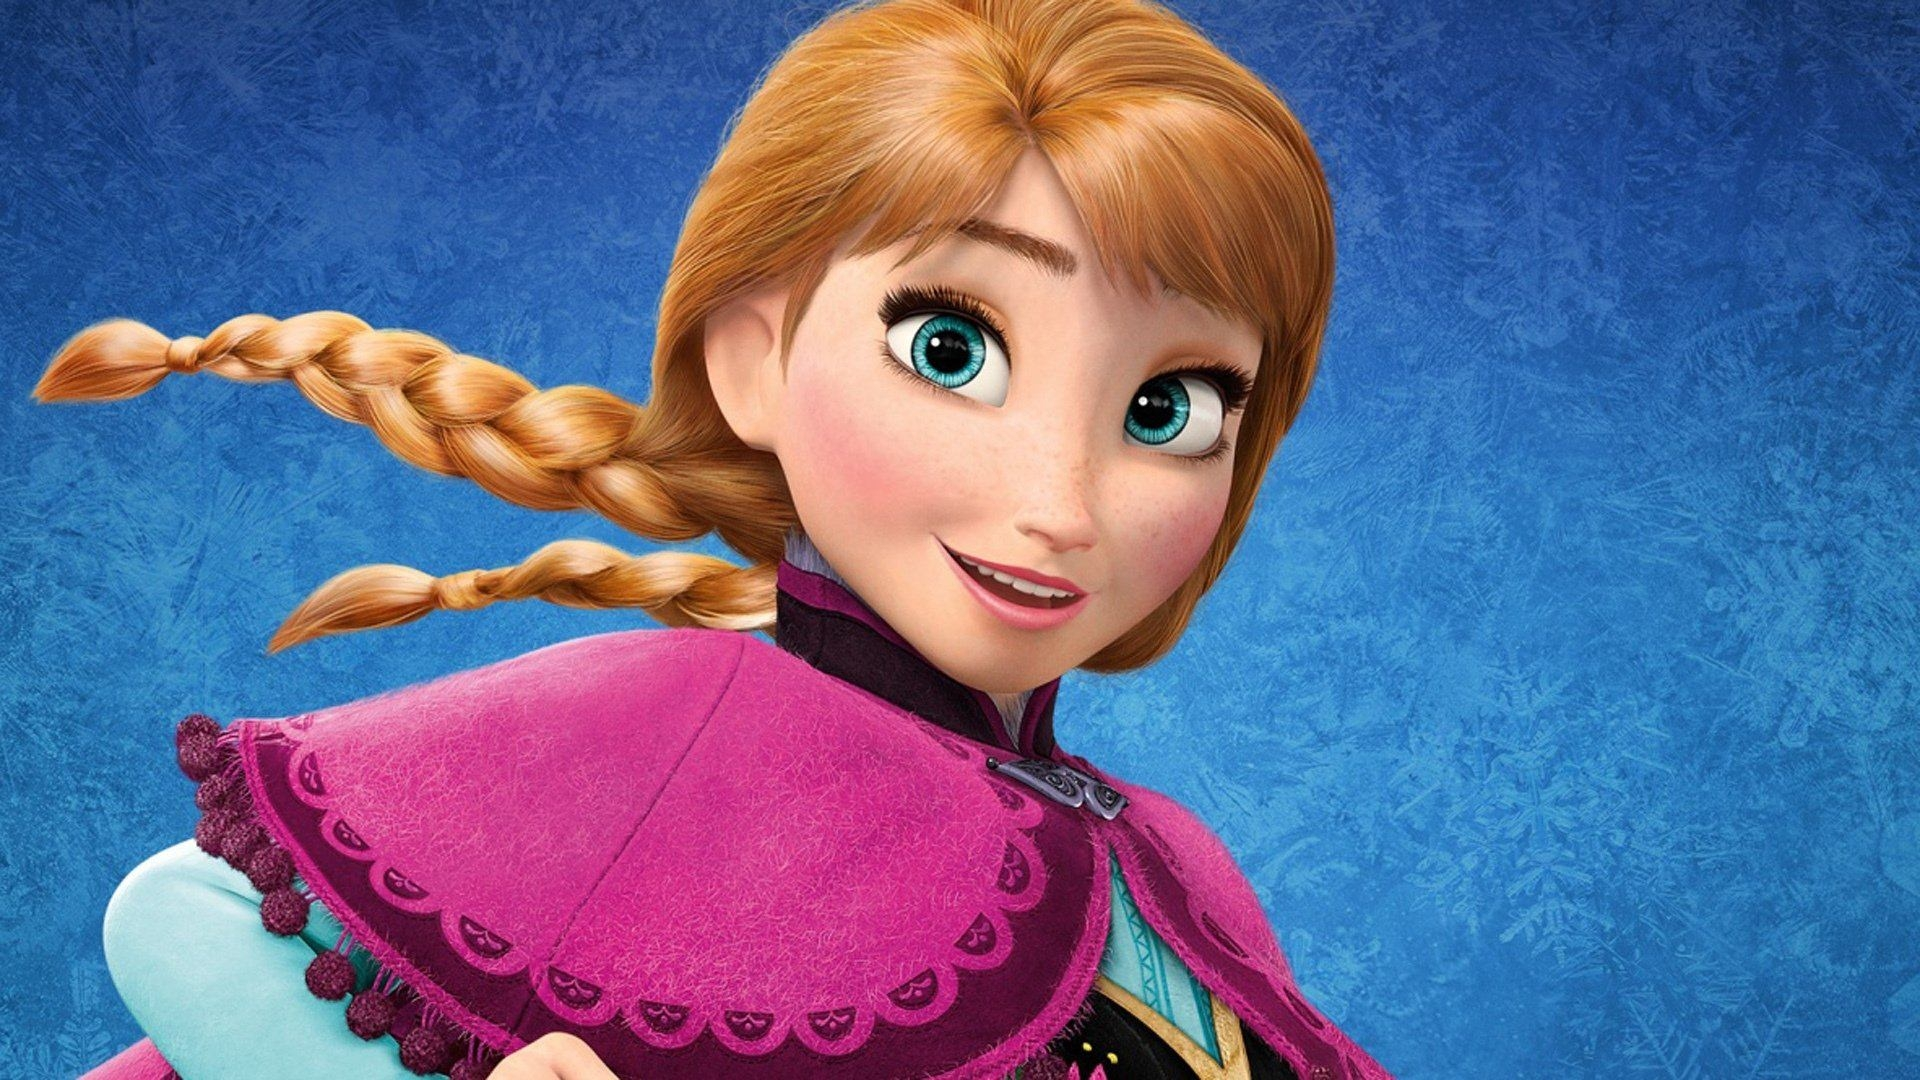 Frozen Anna Wallpaper